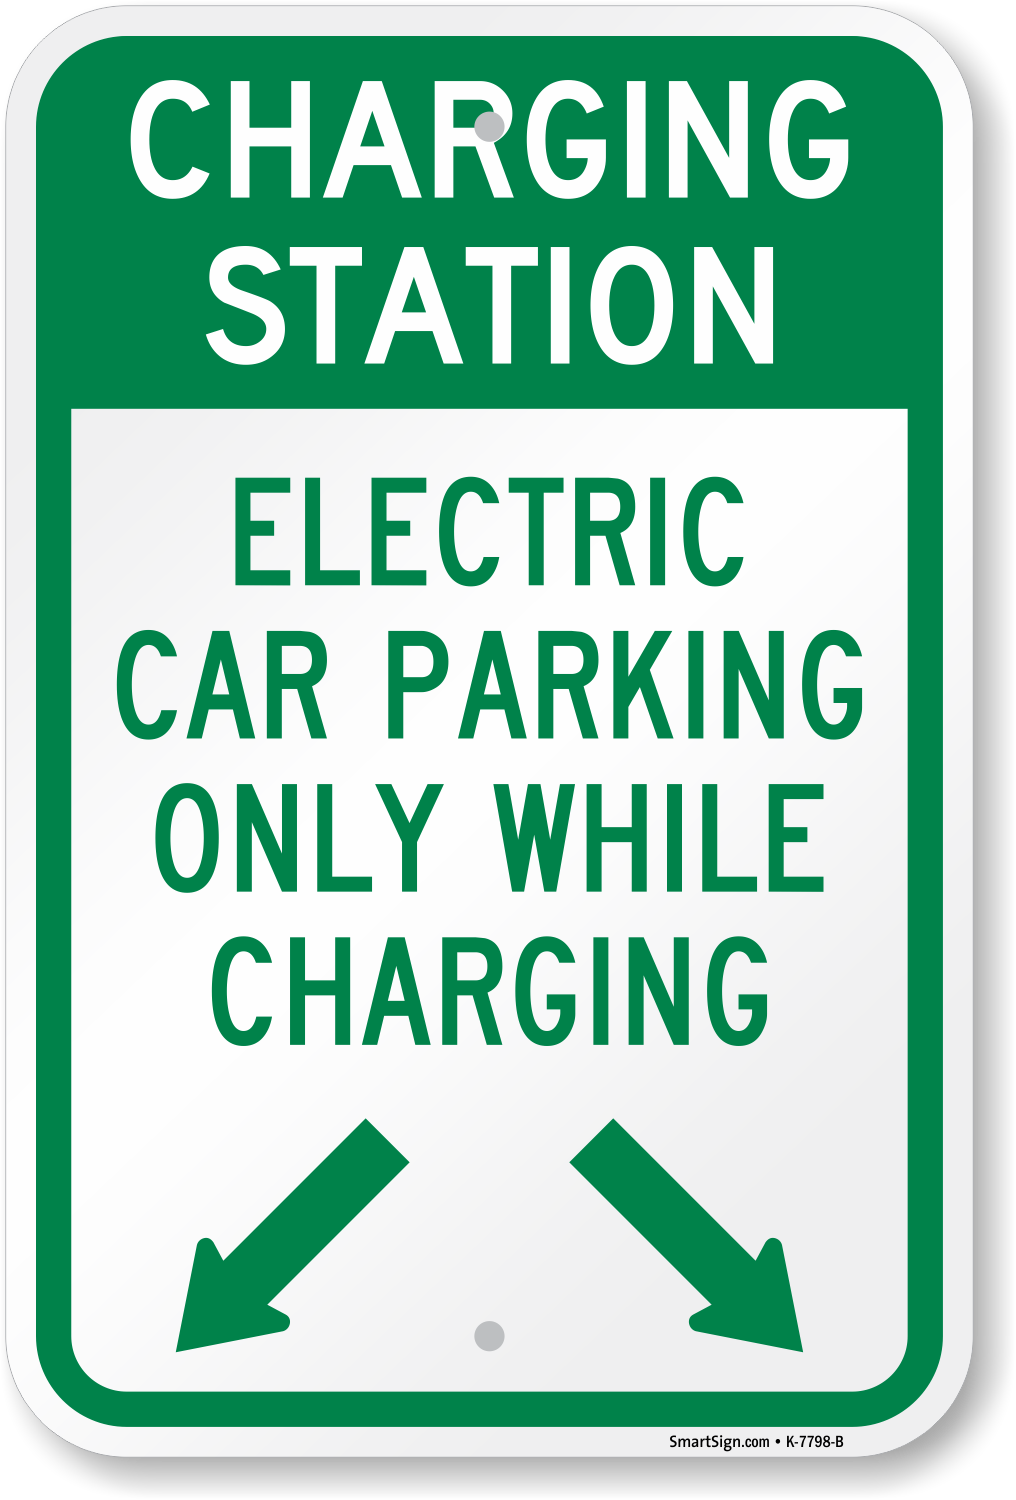 Car Parking Signages